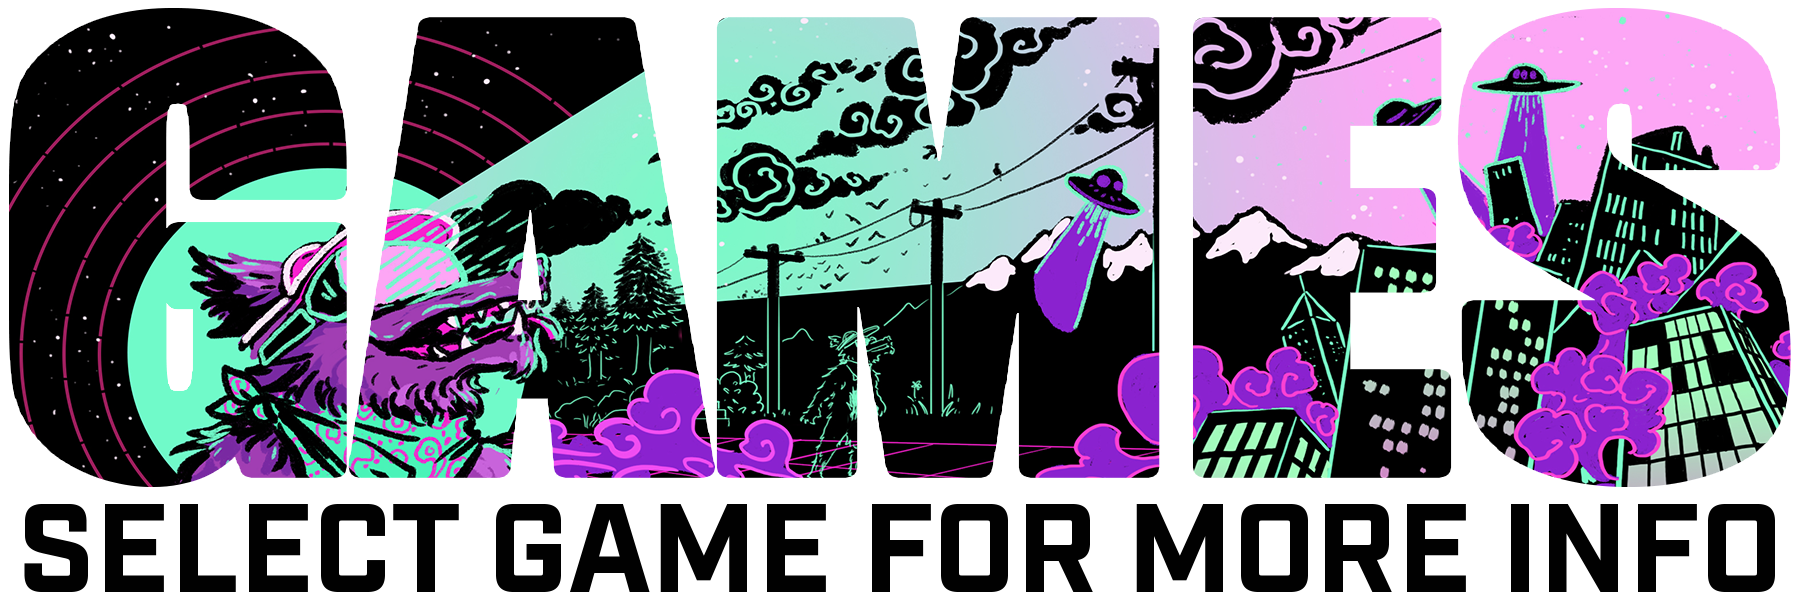 games title banner_2.png